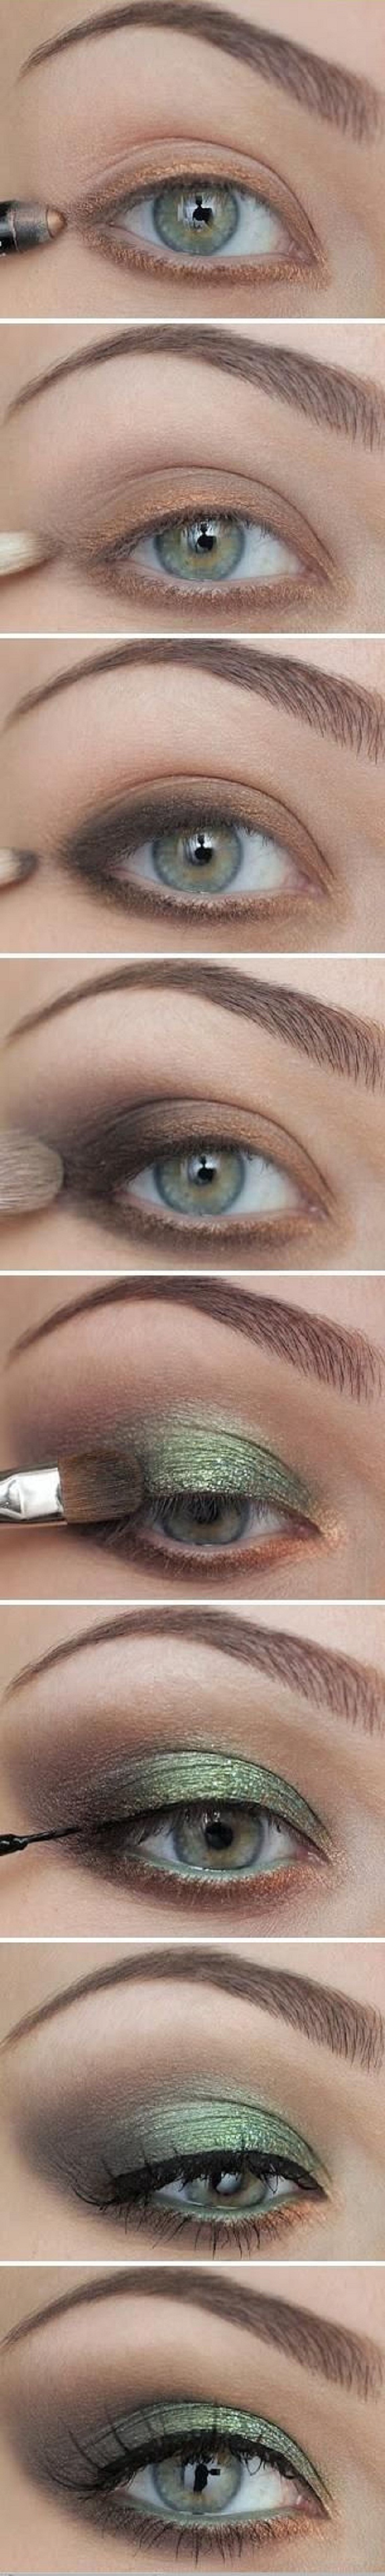 31860-Diy-Eye-Makeup-Tutorial